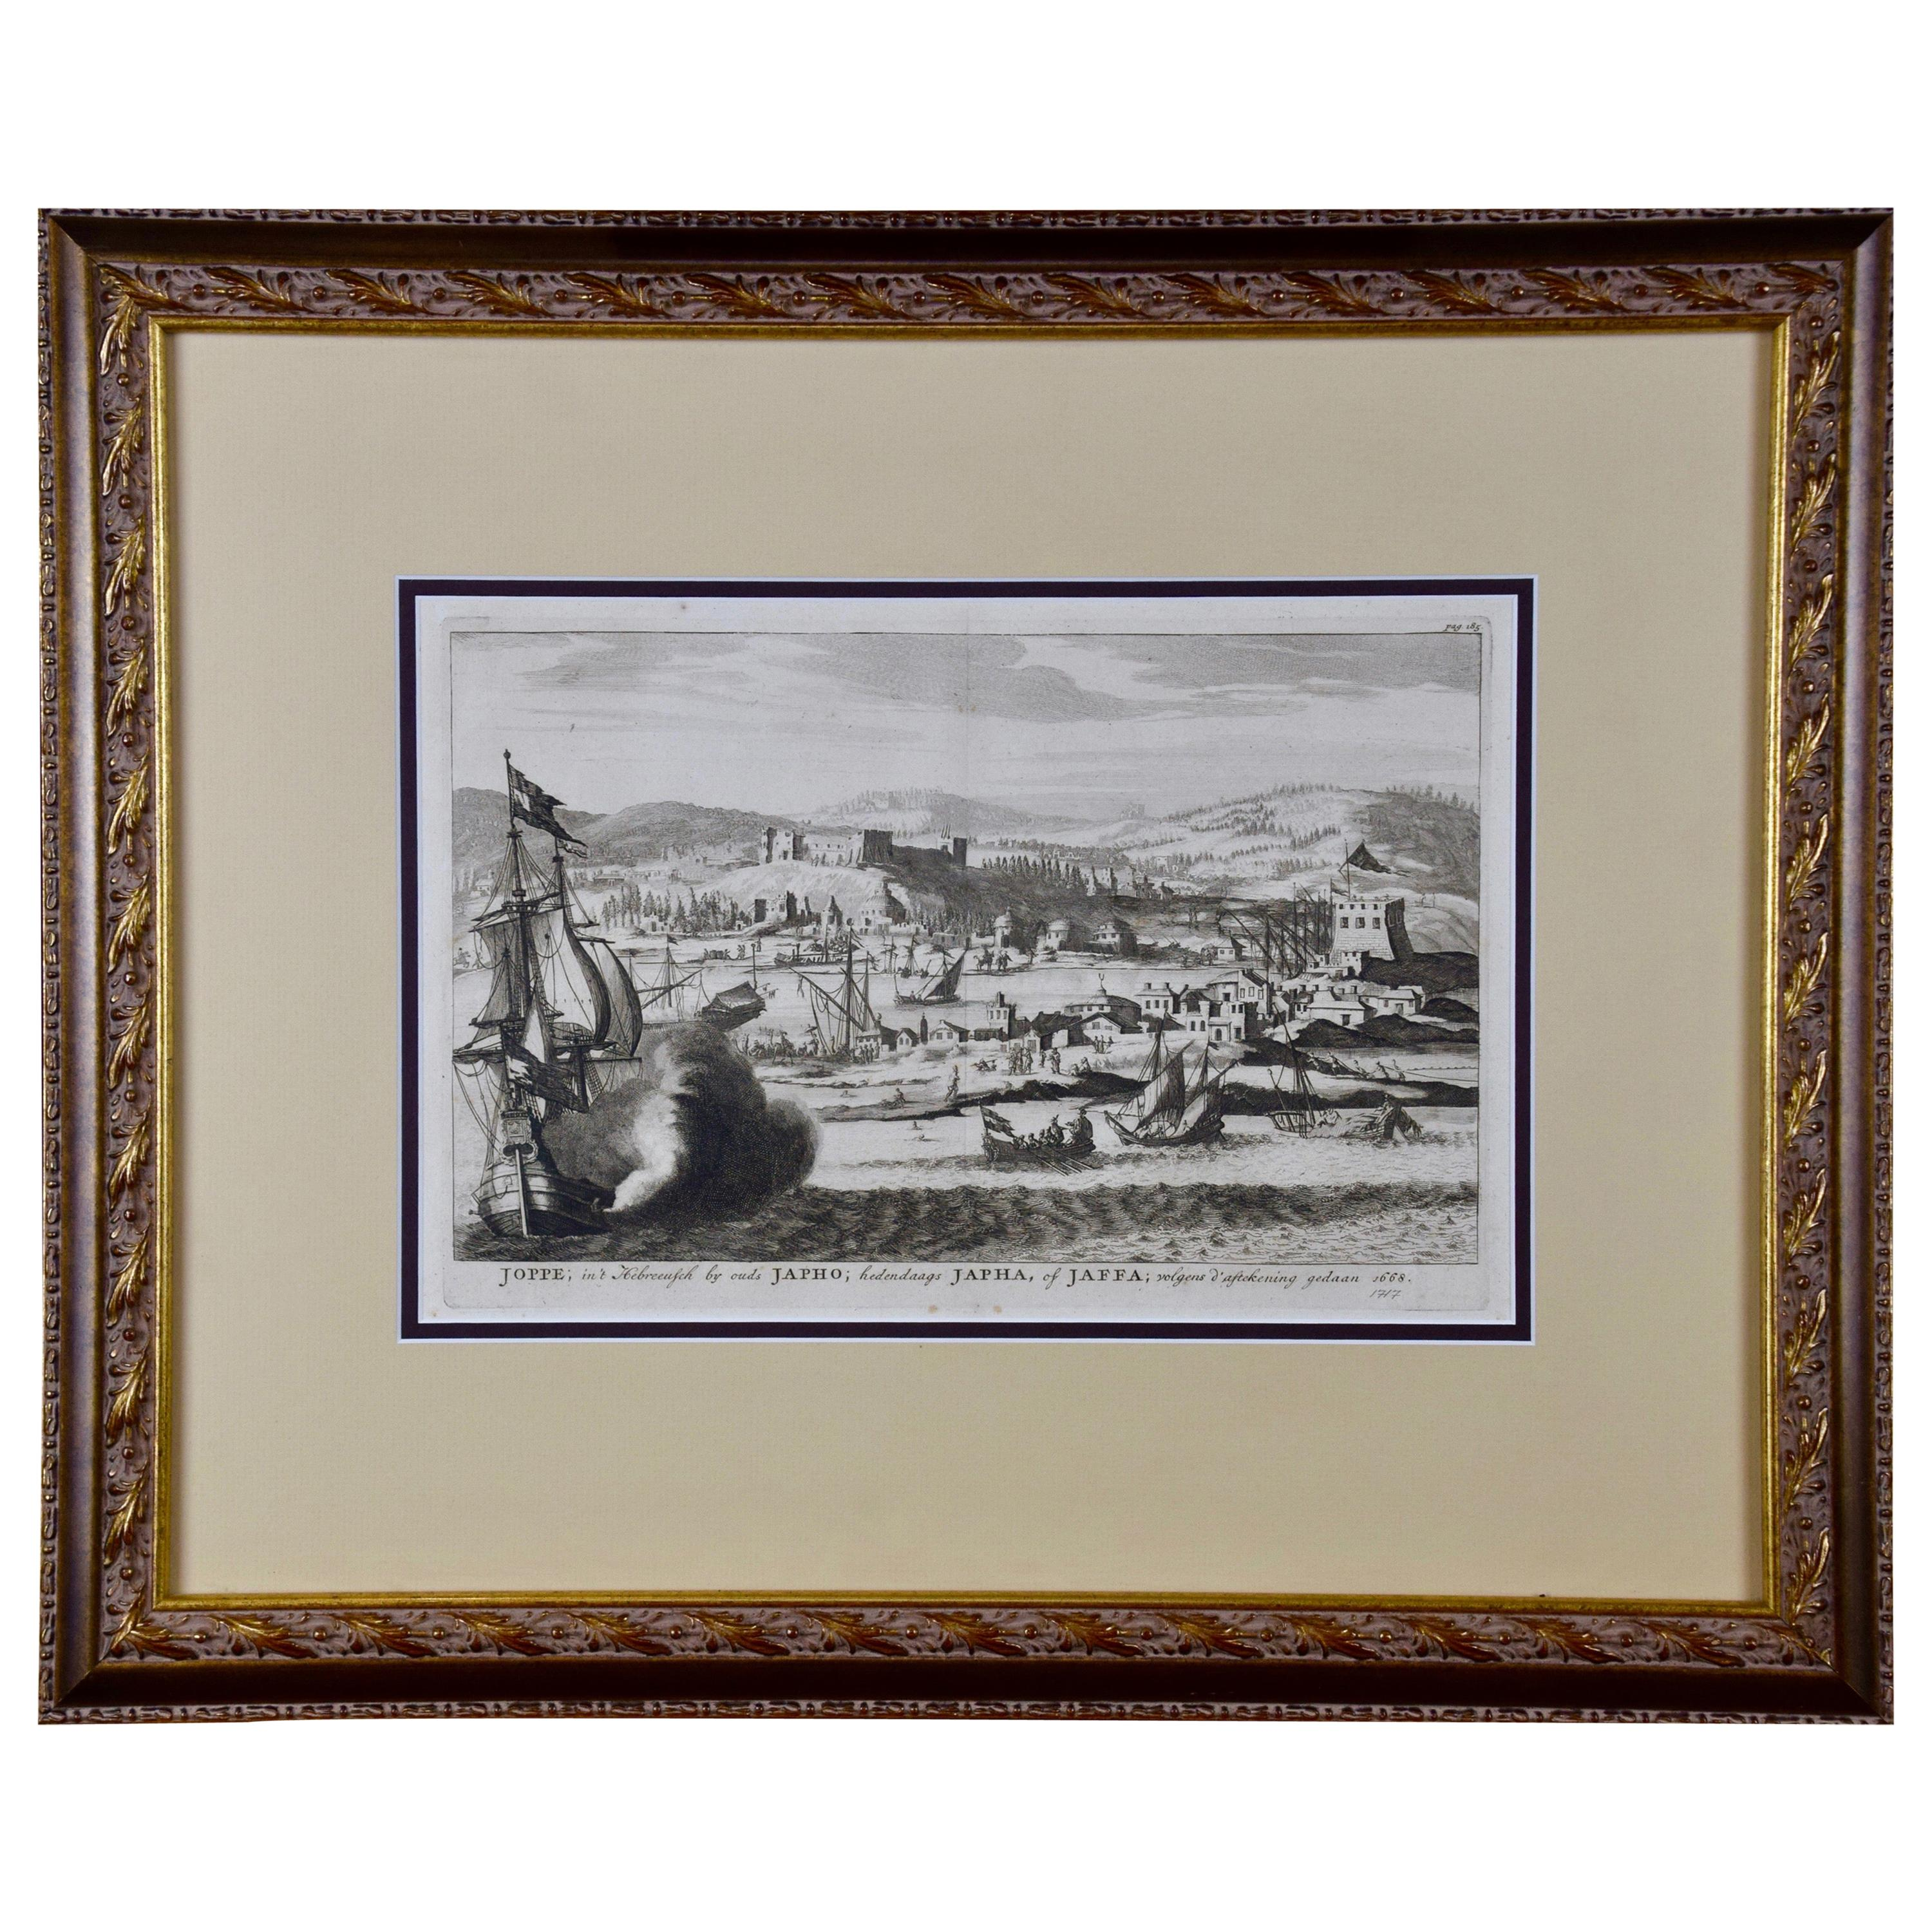 18th Century French Map and City View of Joppe/Jaffa 'Tel Aviv' by Sanson